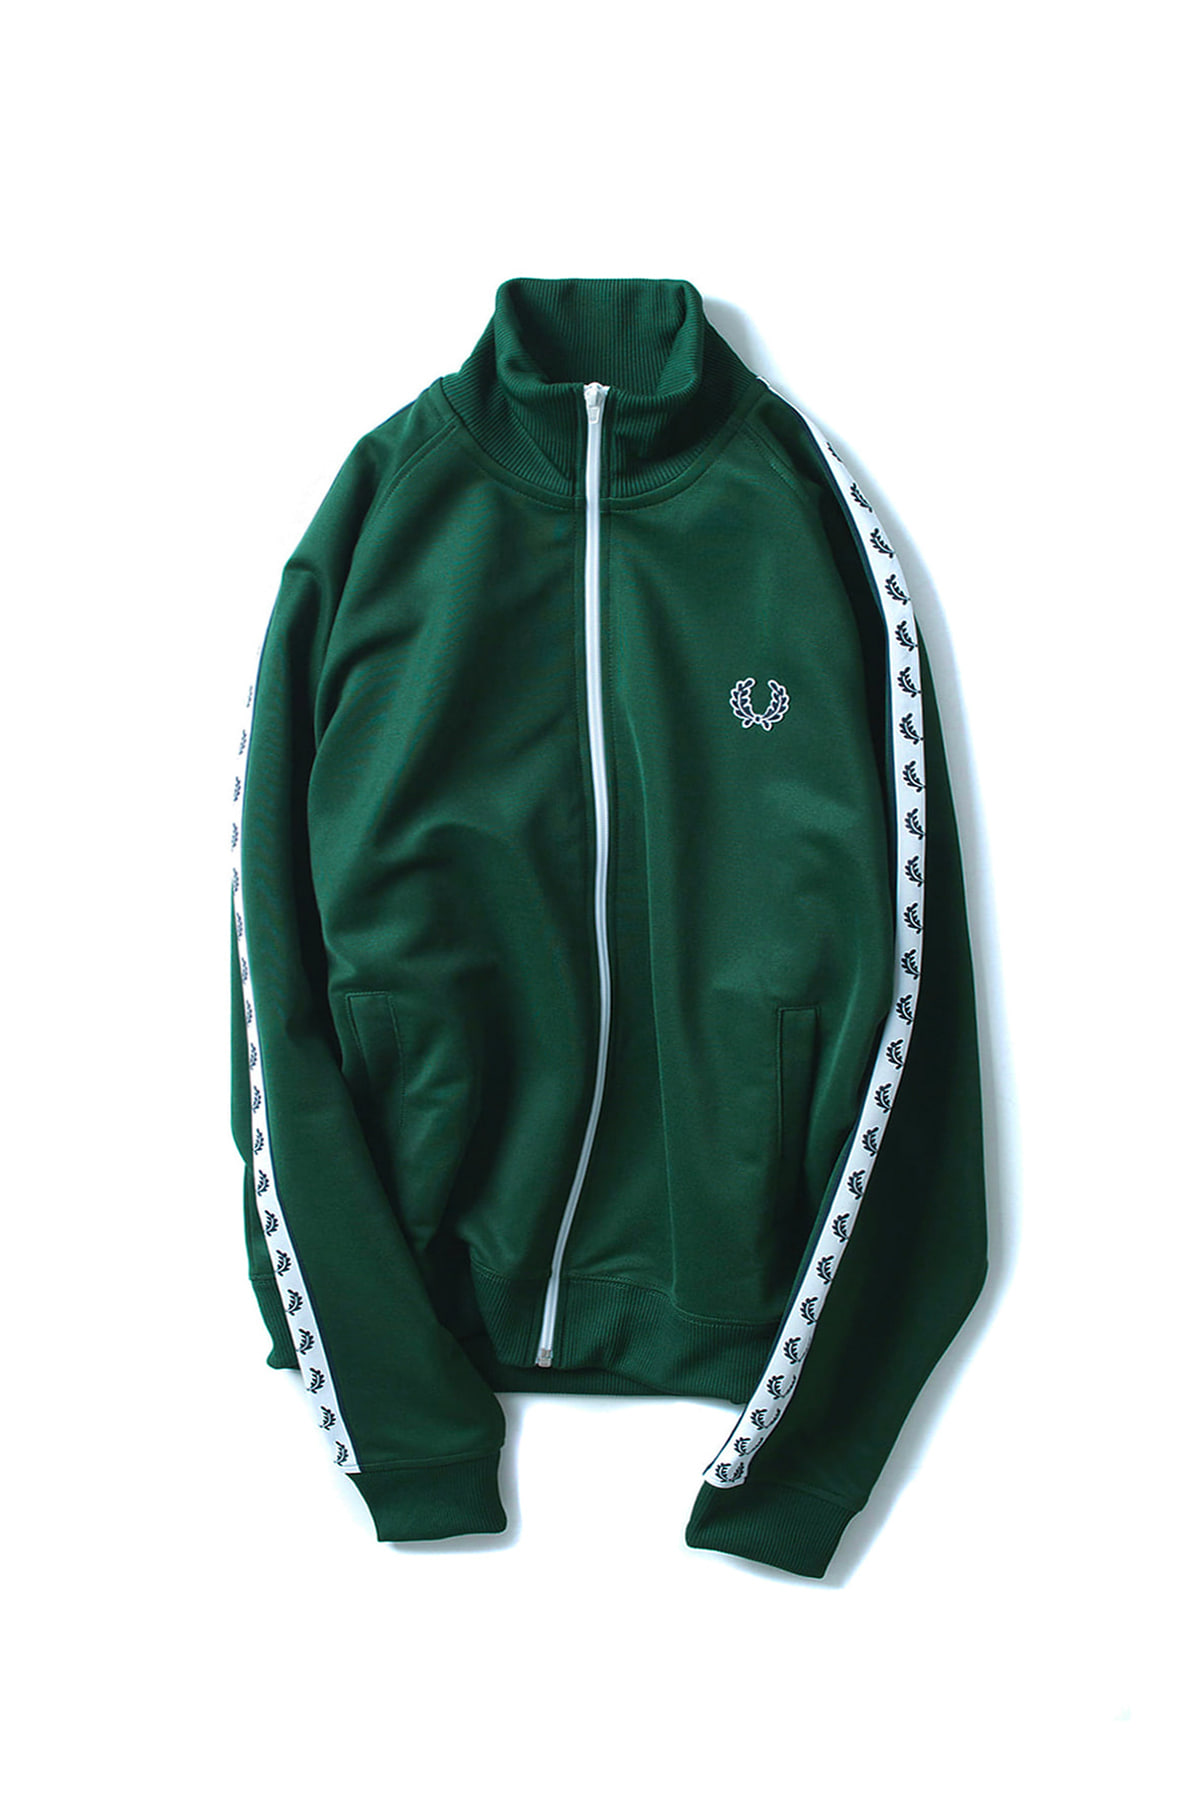 FRED PERRY : Taped Track Jacket (Ivy)